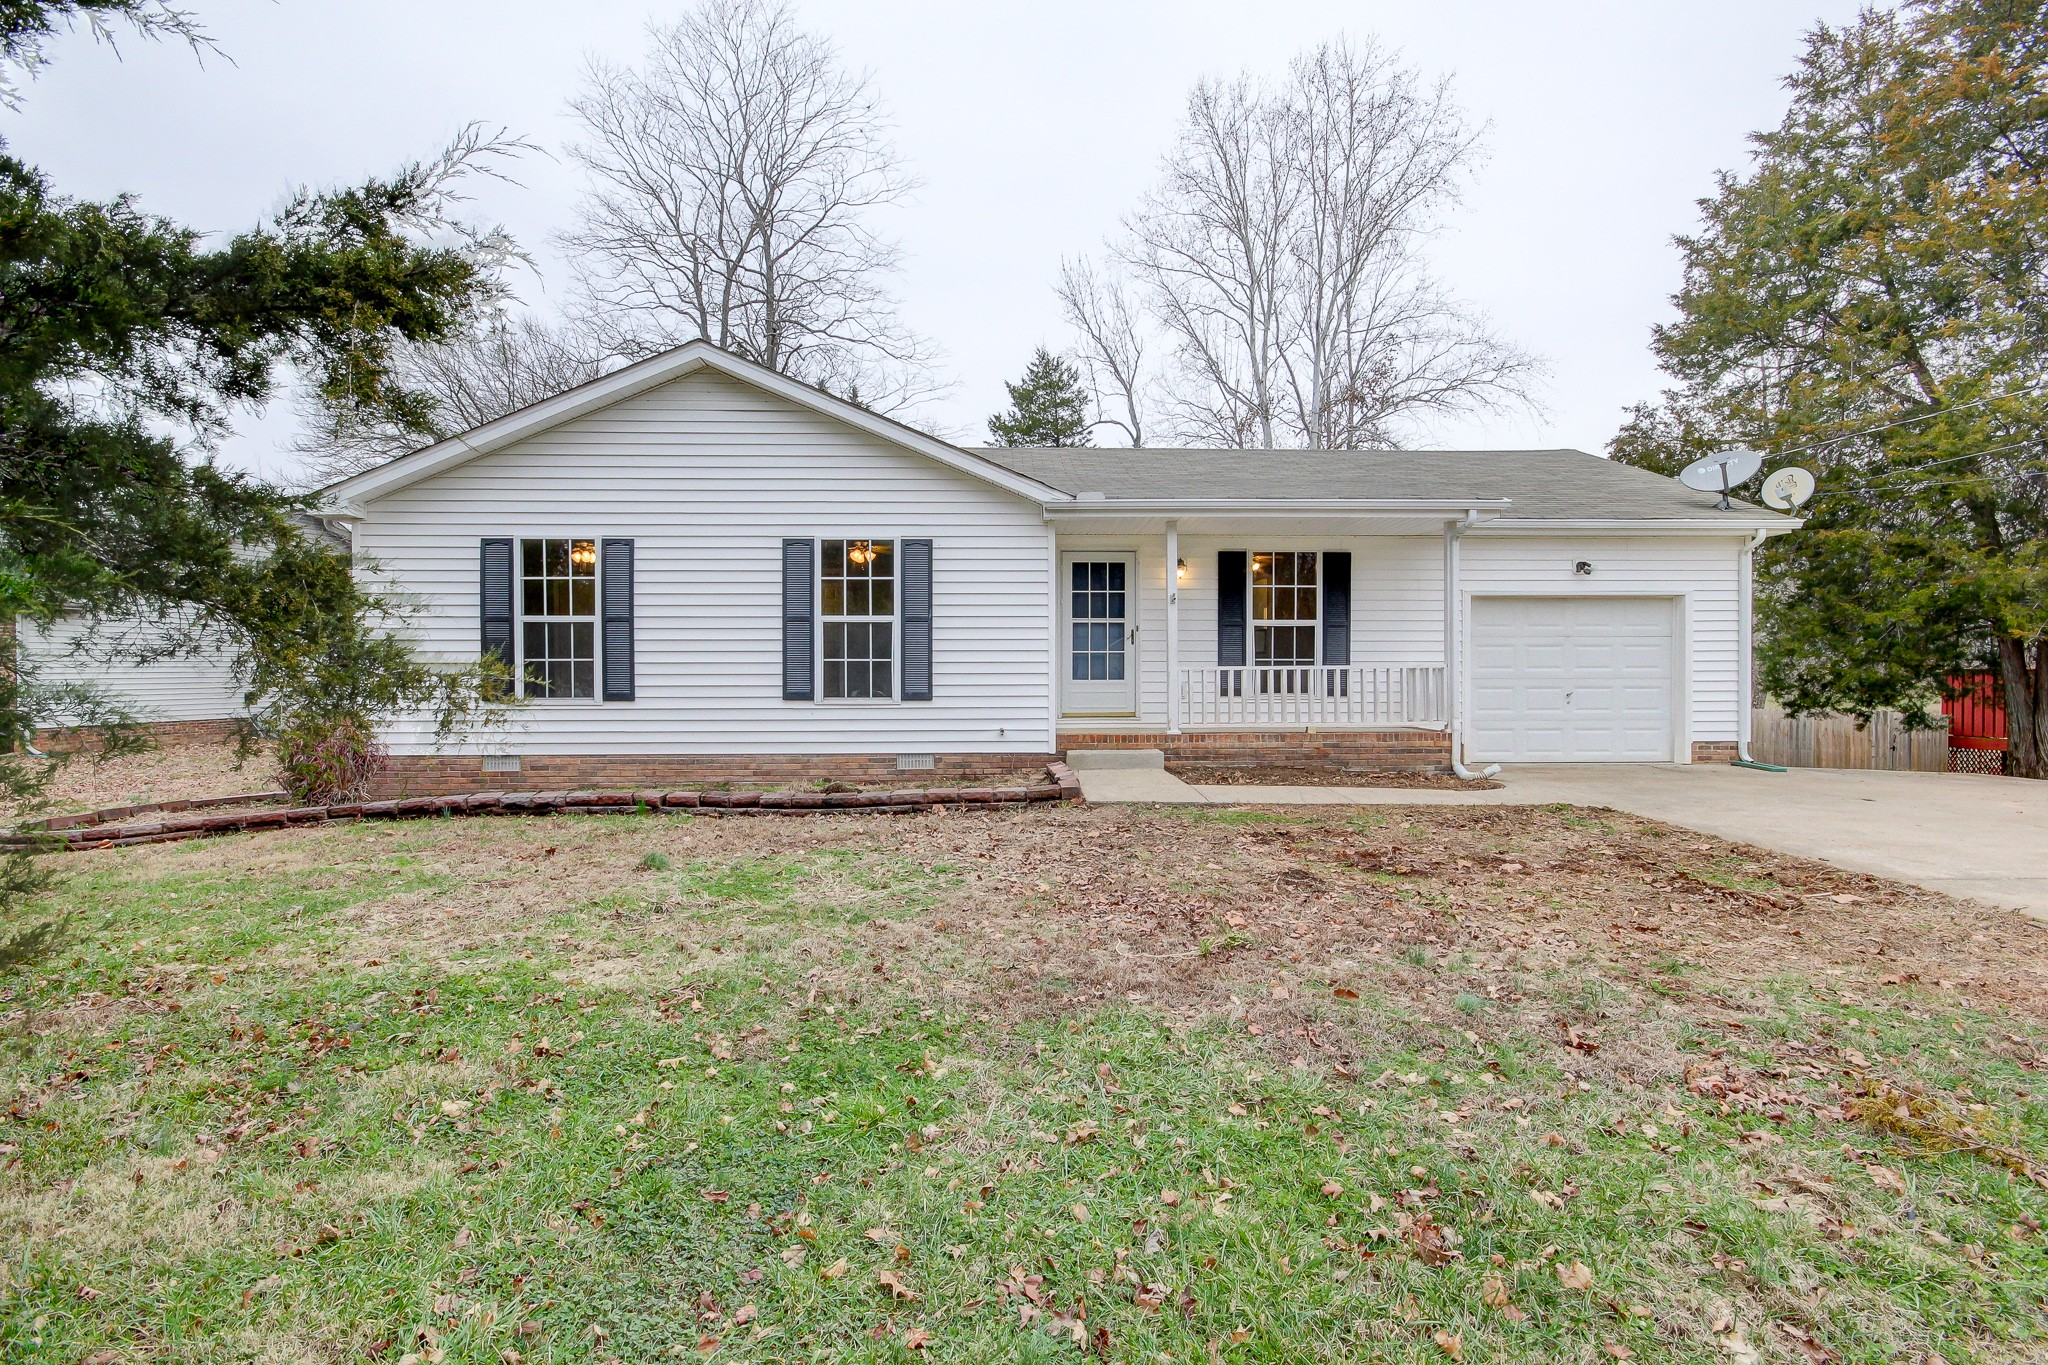 3505 Hunters Rdg, Woodlawn, TN 37191 - Woodlawn, TN real estate listing